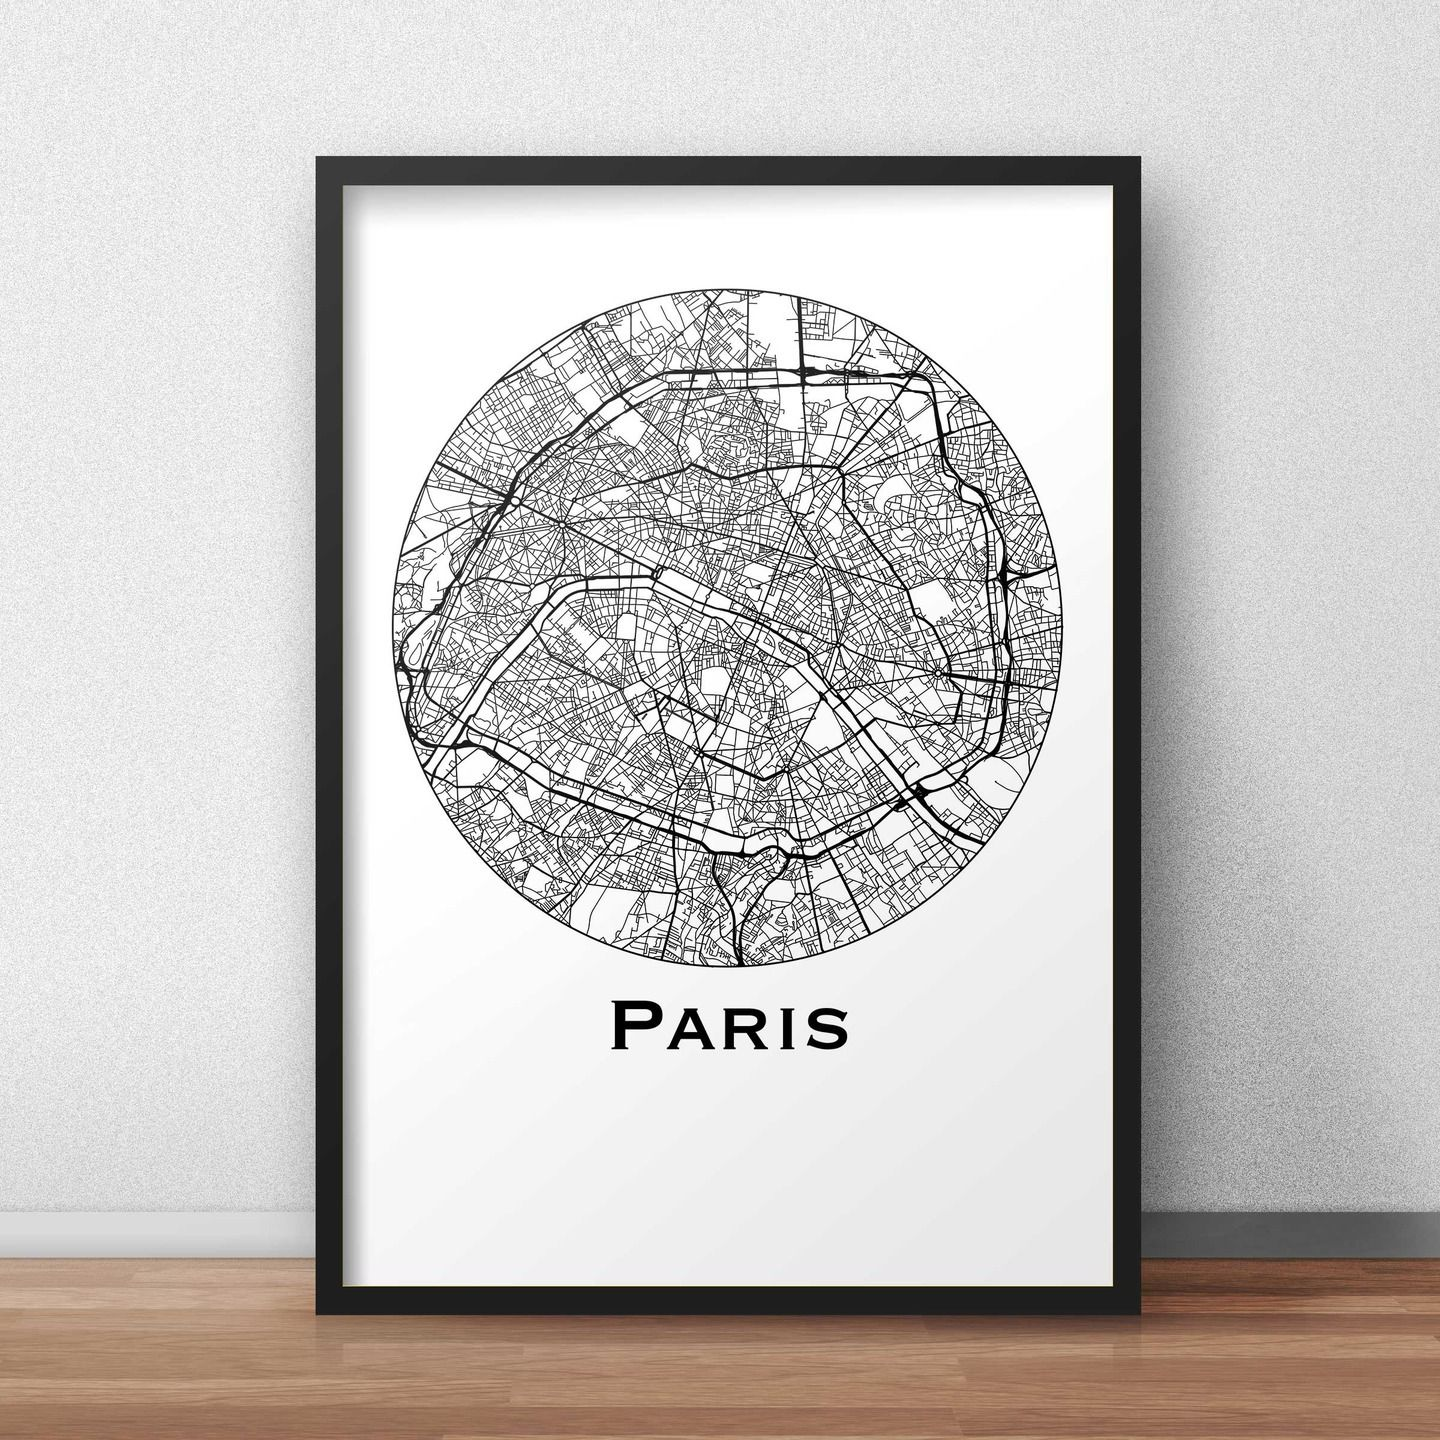 affiche a4 carte paris minimalist map city map poster de ville d coration murale plan de. Black Bedroom Furniture Sets. Home Design Ideas